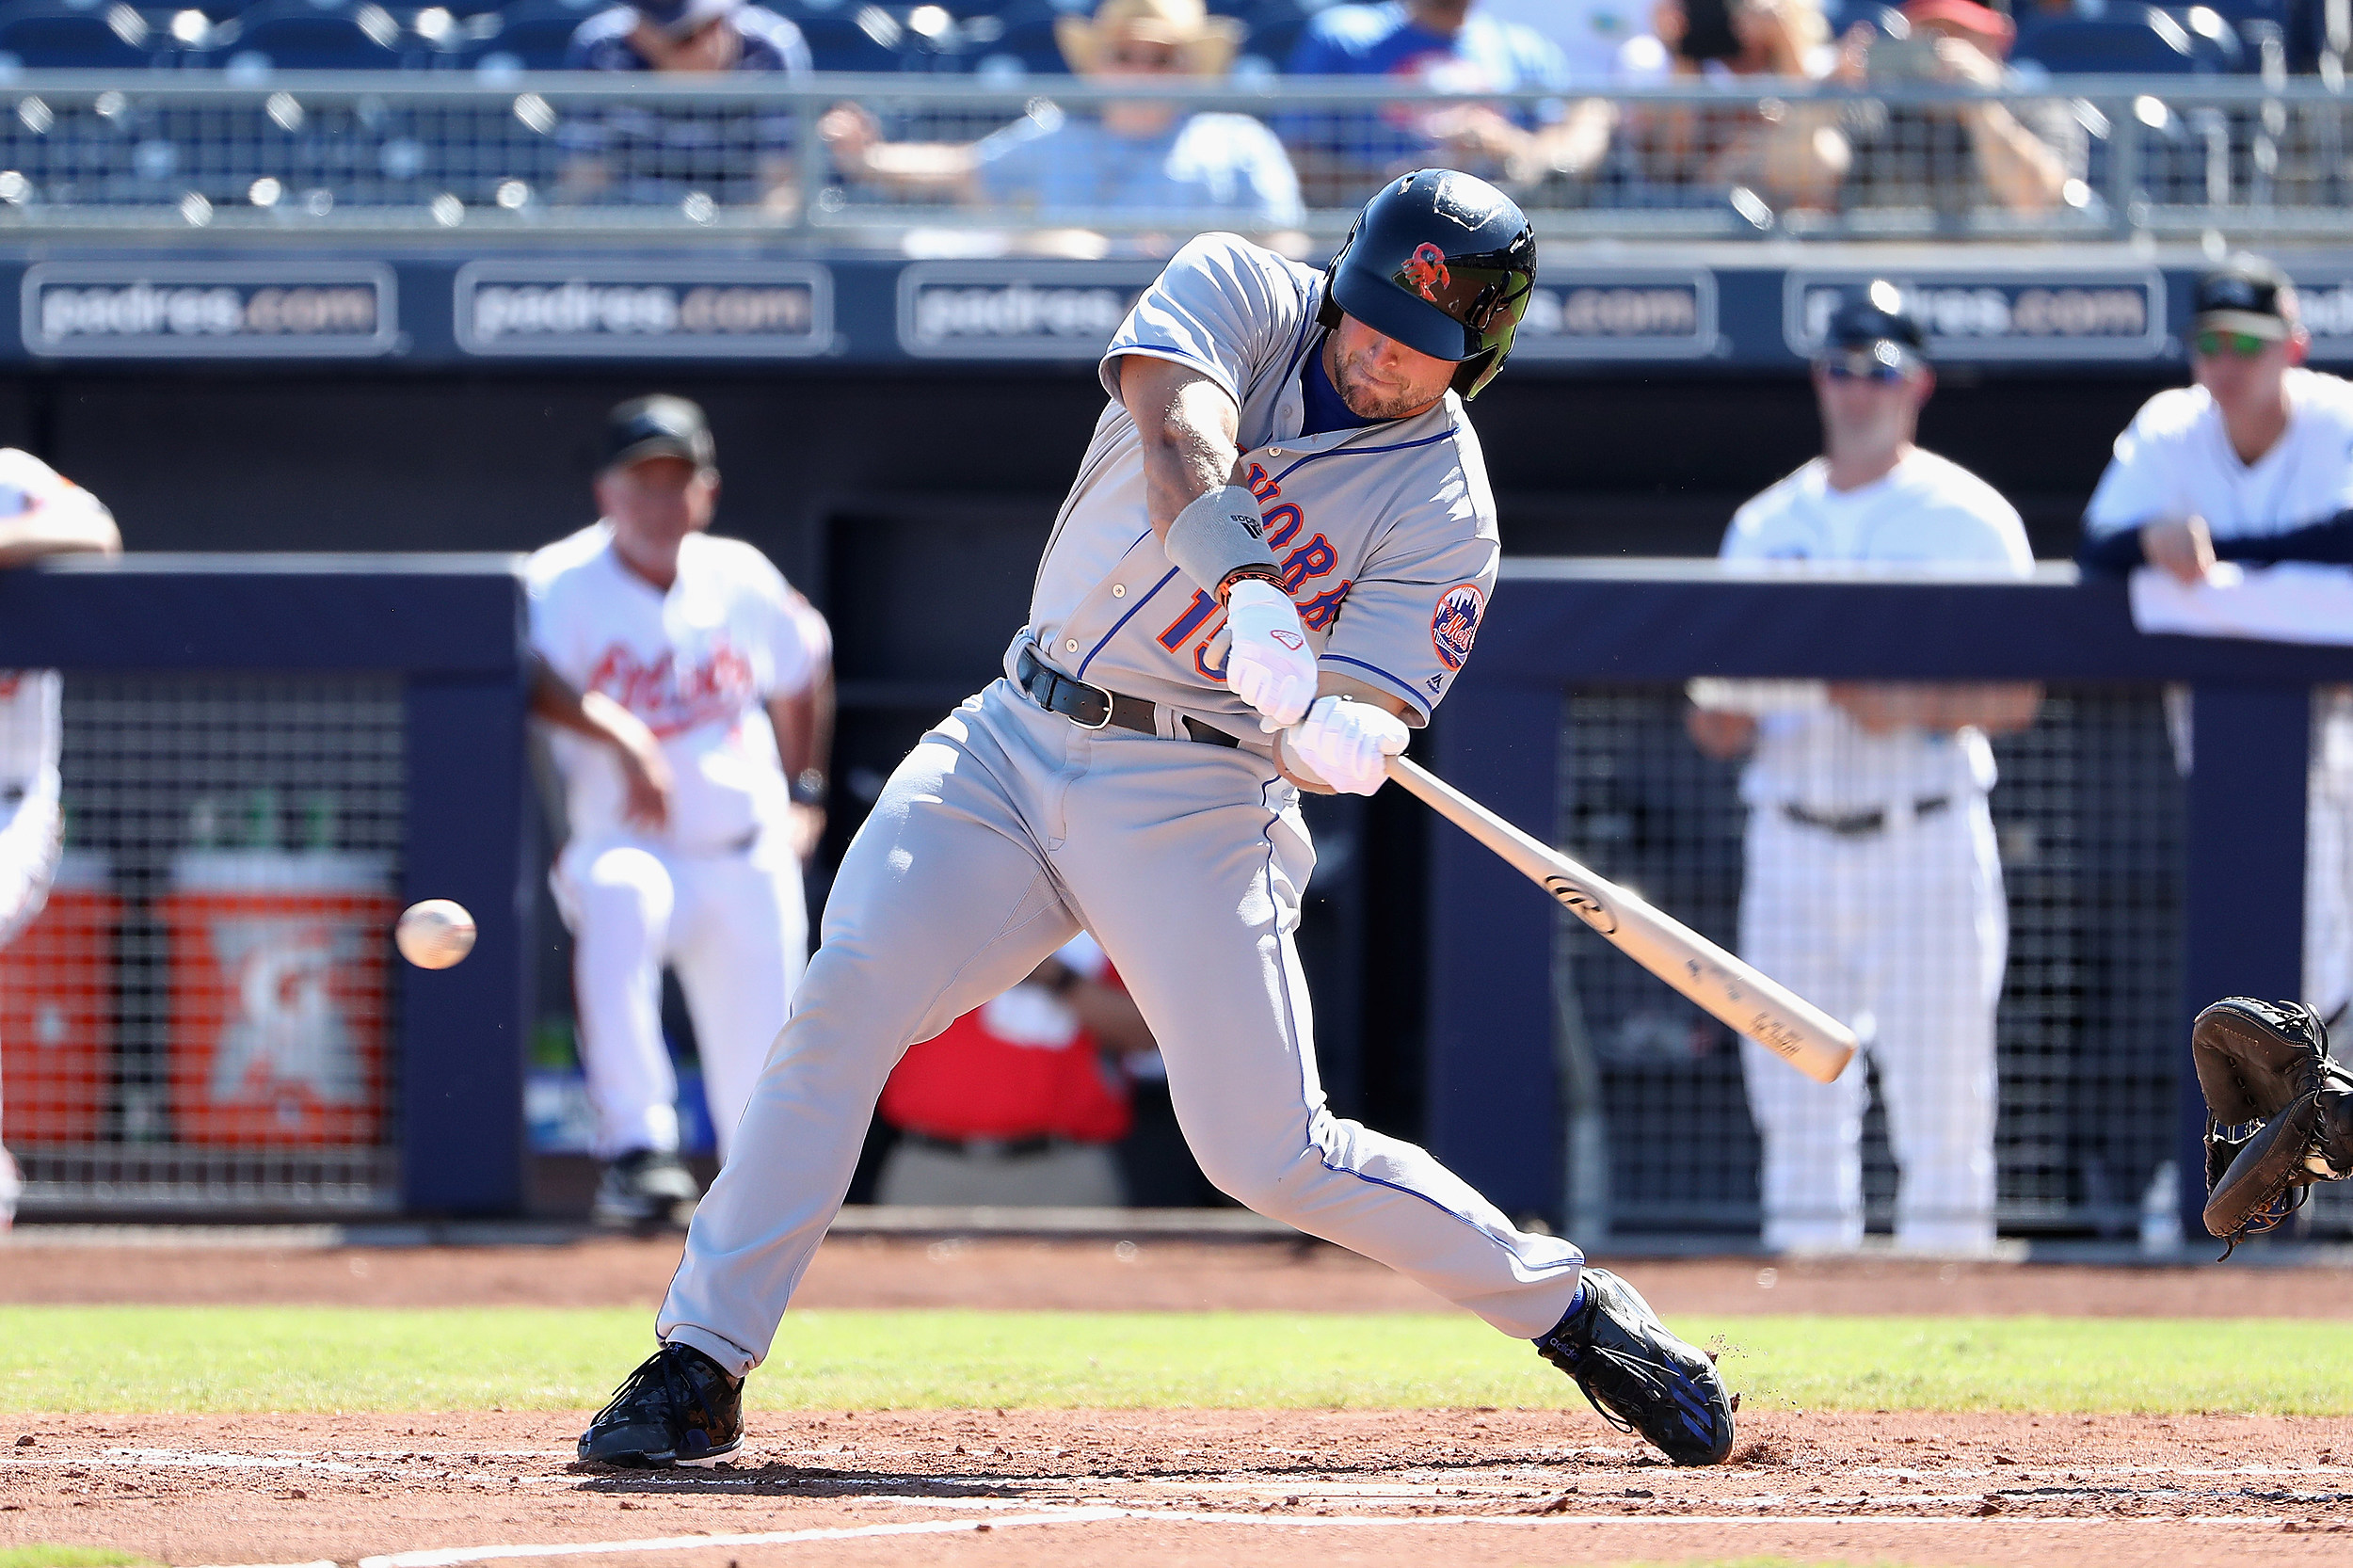 Tim Tebow Goes 0-For-3 With 2 Strikeouts In Spring Debut